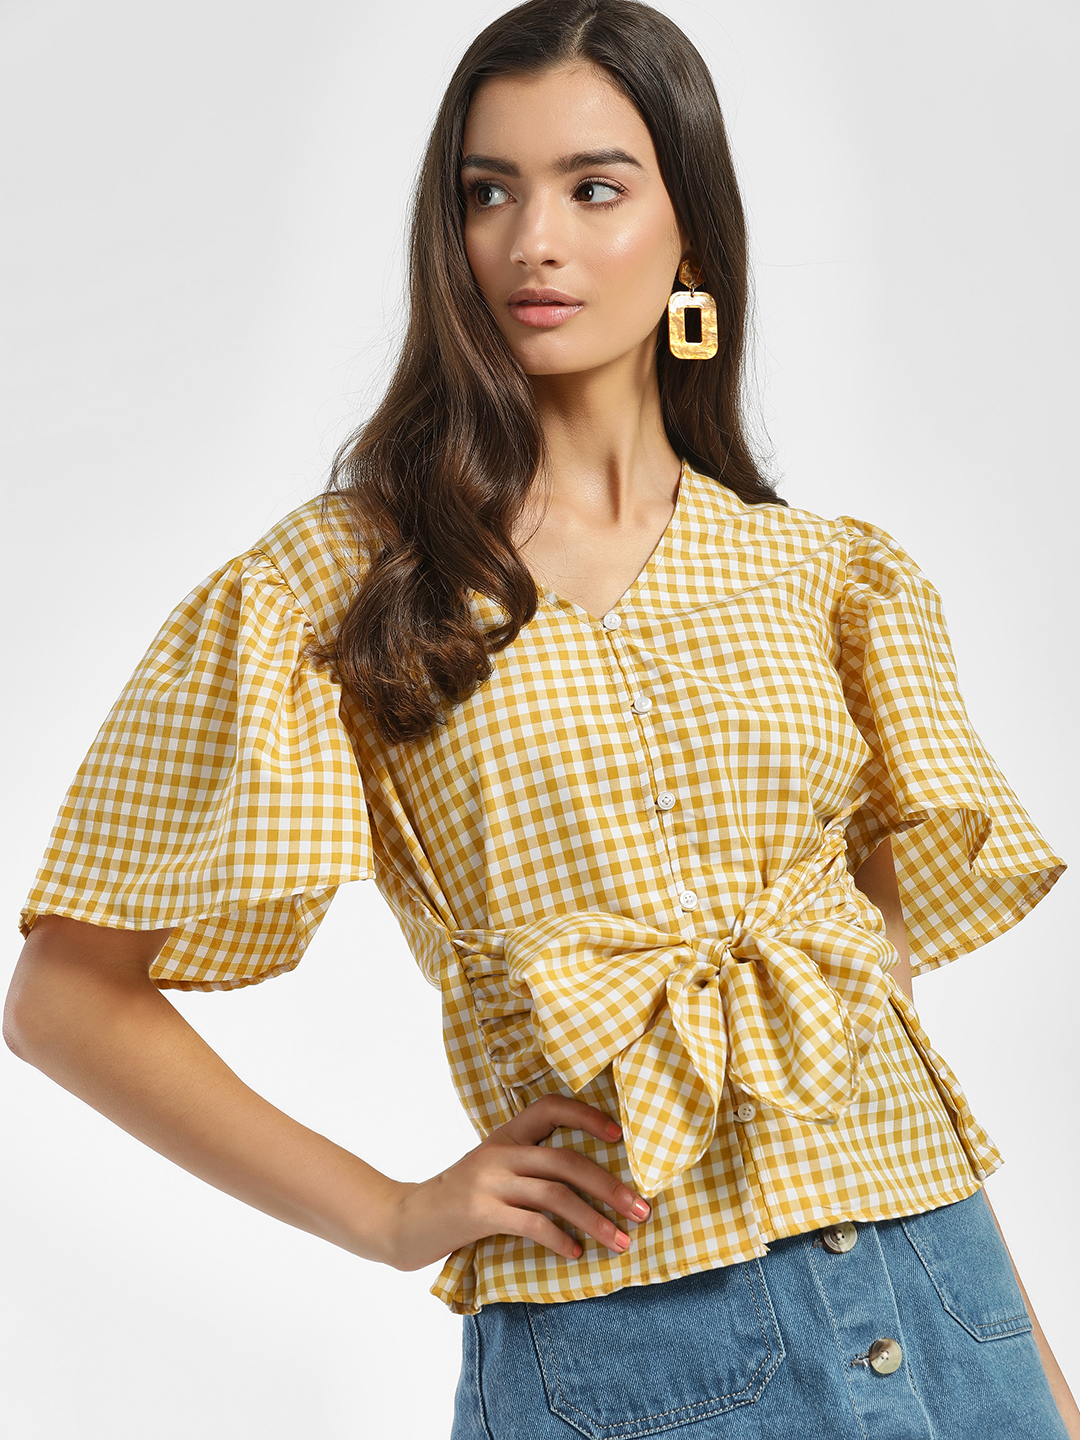 Sbuys Multi Gingham Check Waist Tie Blouse 1